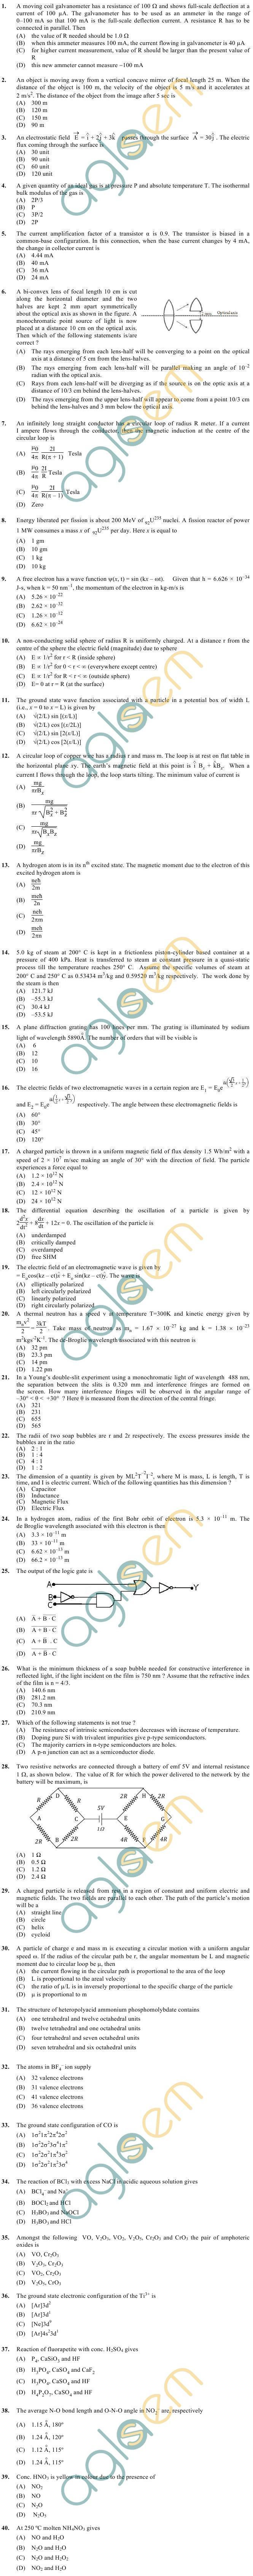 OJEE 2013 Question Paper for LE BSC PCM